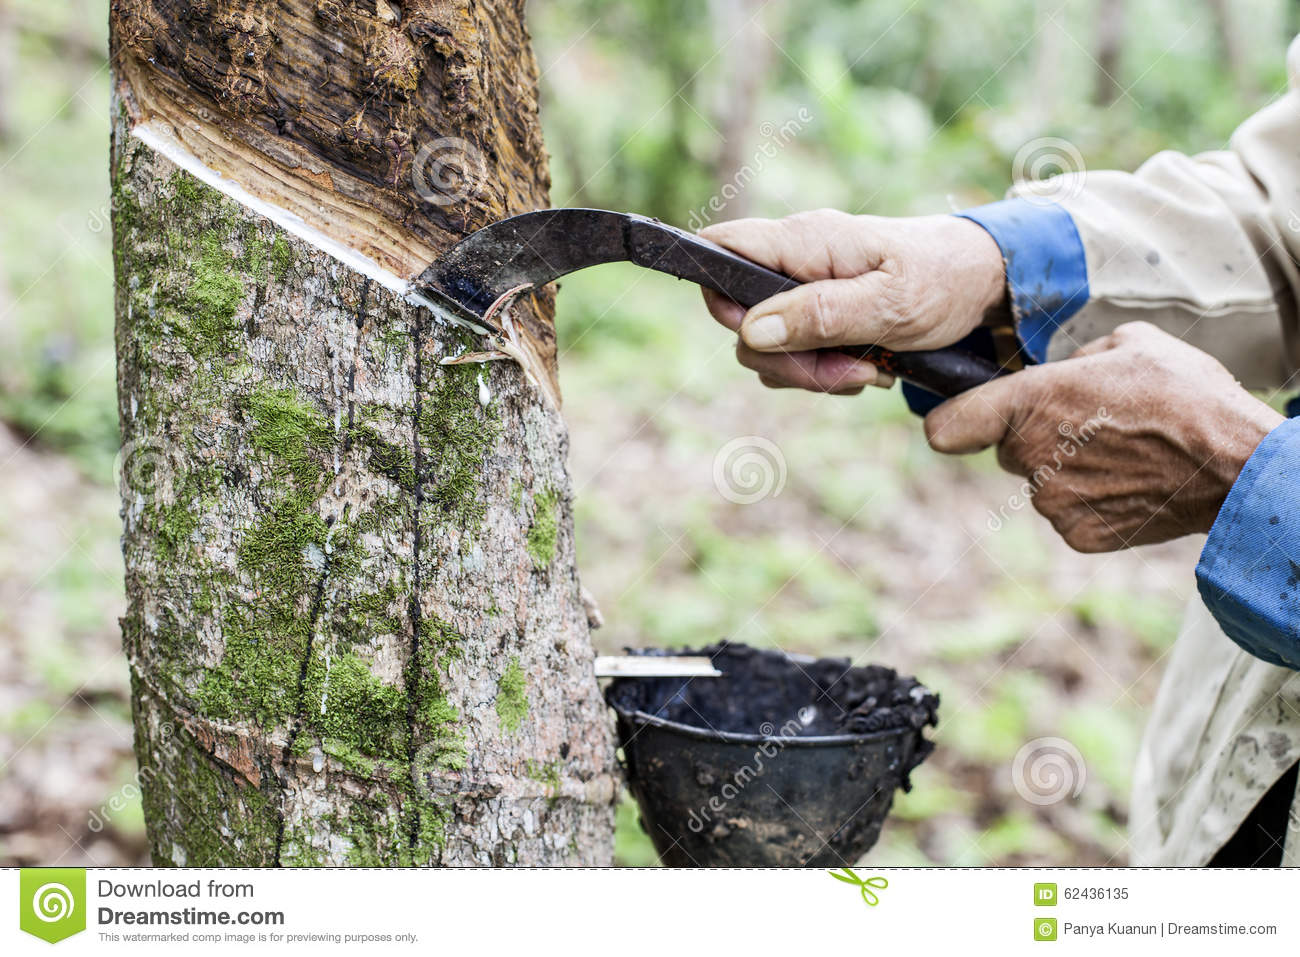 people-cutting-tapped-rubber-tree-knife-62436135.jpg